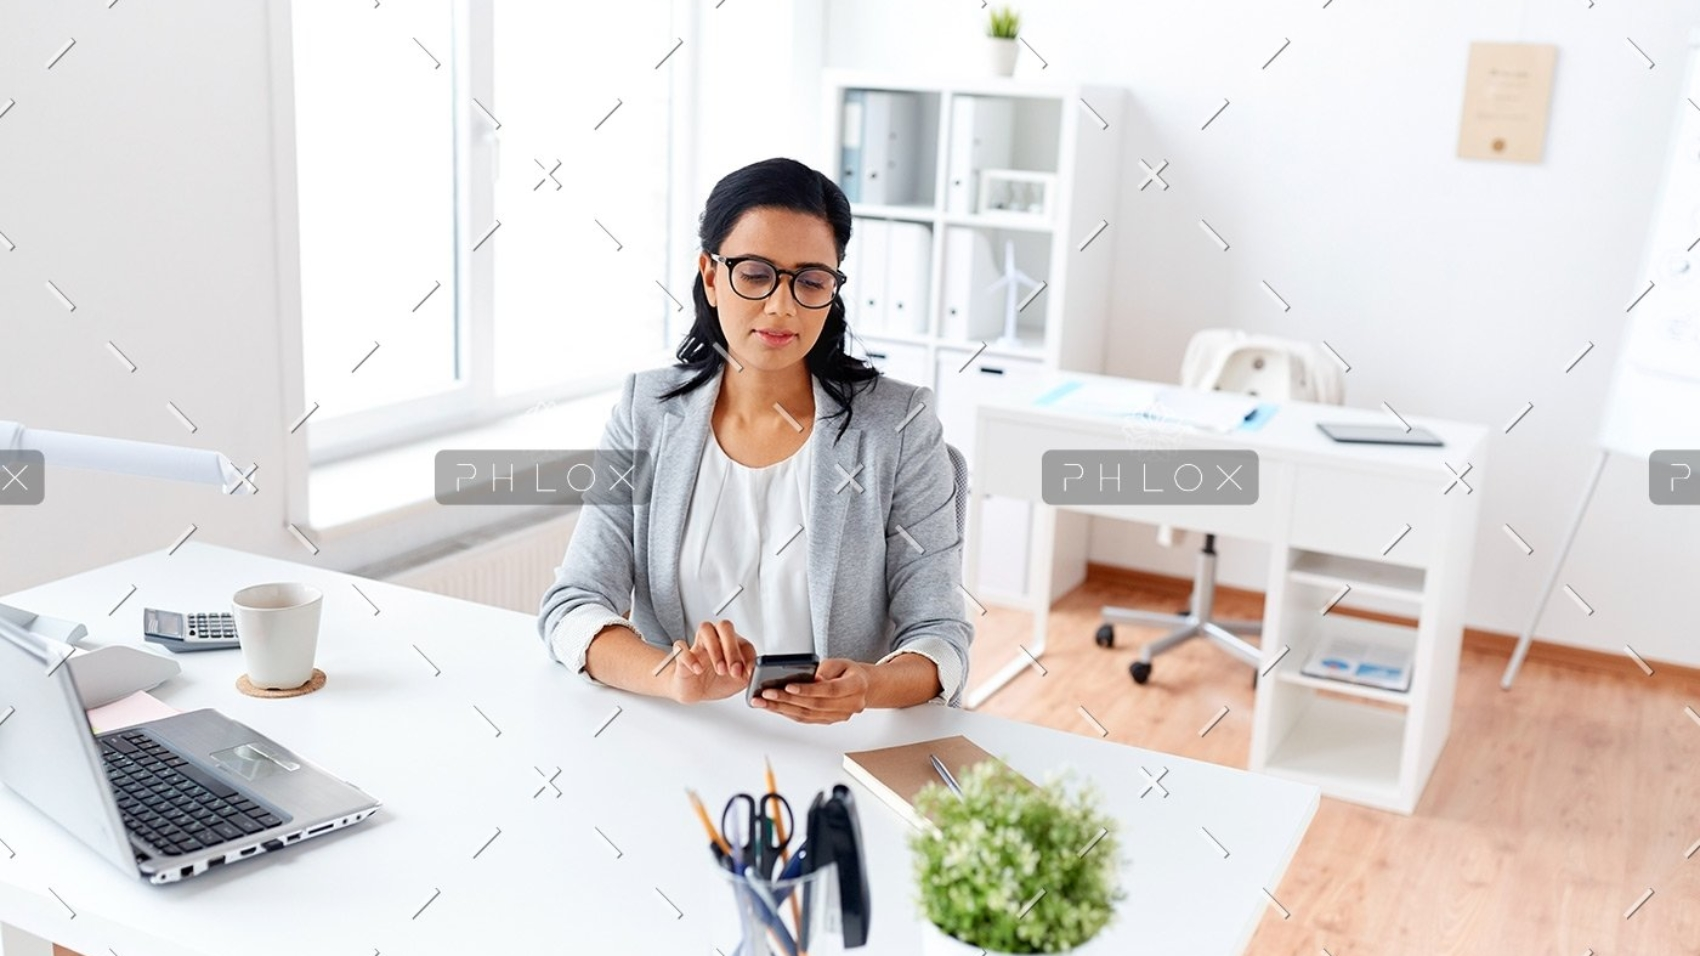 businesswoman-messaging-on-smartphone-at-office-P5AQU8Y